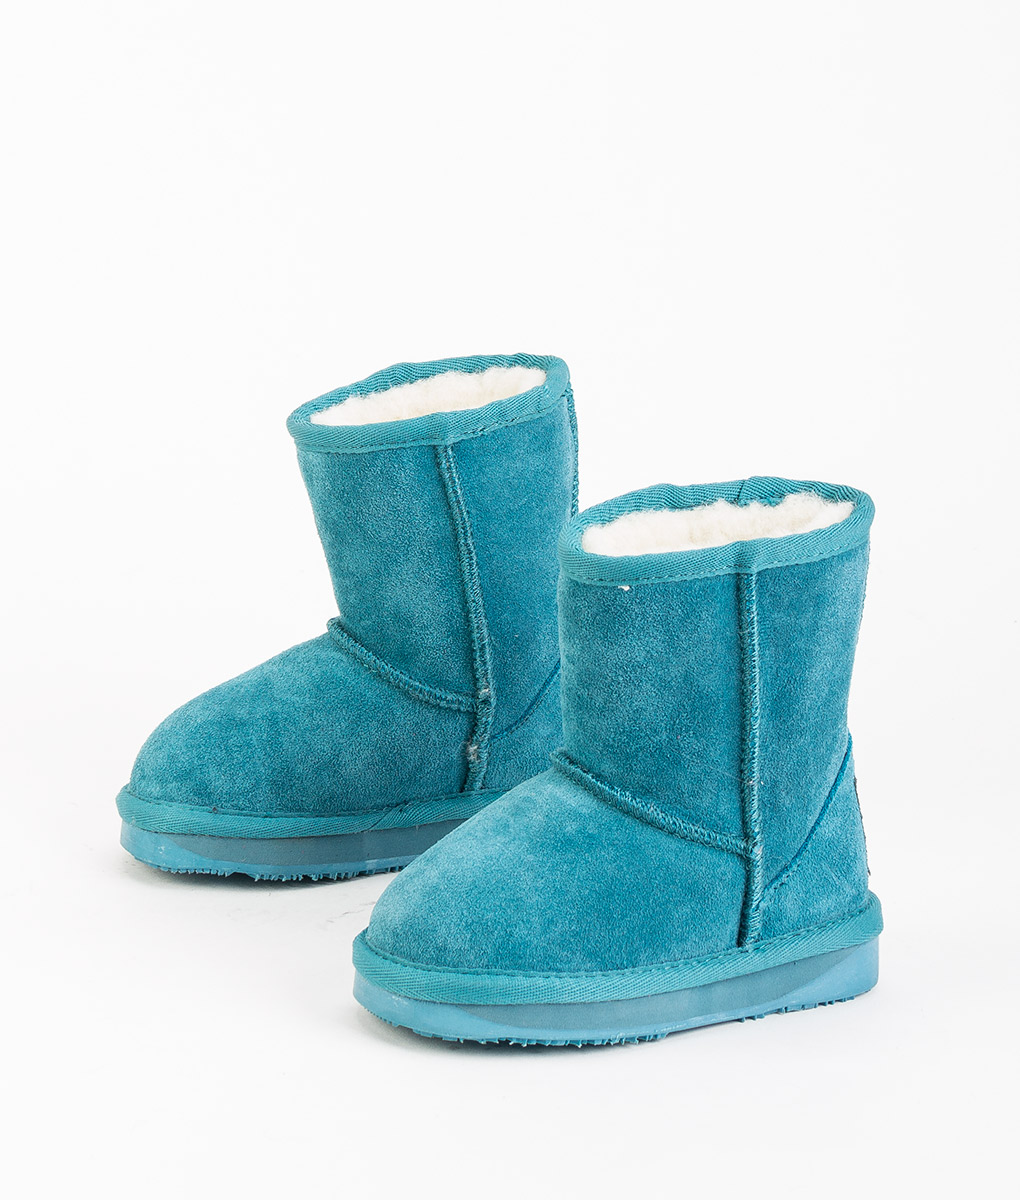 BOOROO Kids Ankle Boots BLISS, Teal 59.99